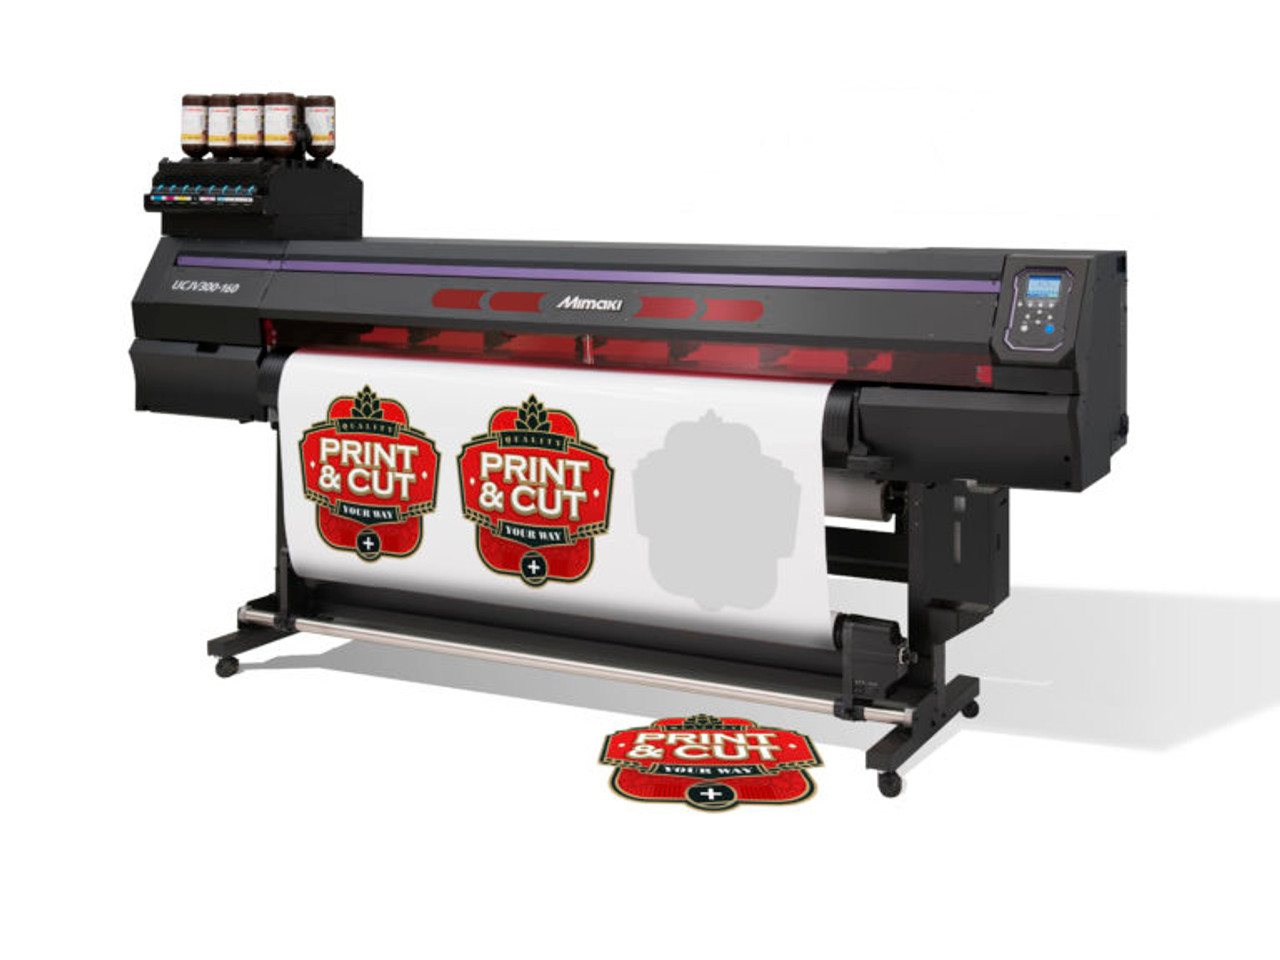 Mimaki UCJV300-160 UV-LED Roll to Roll Cut-and-Print